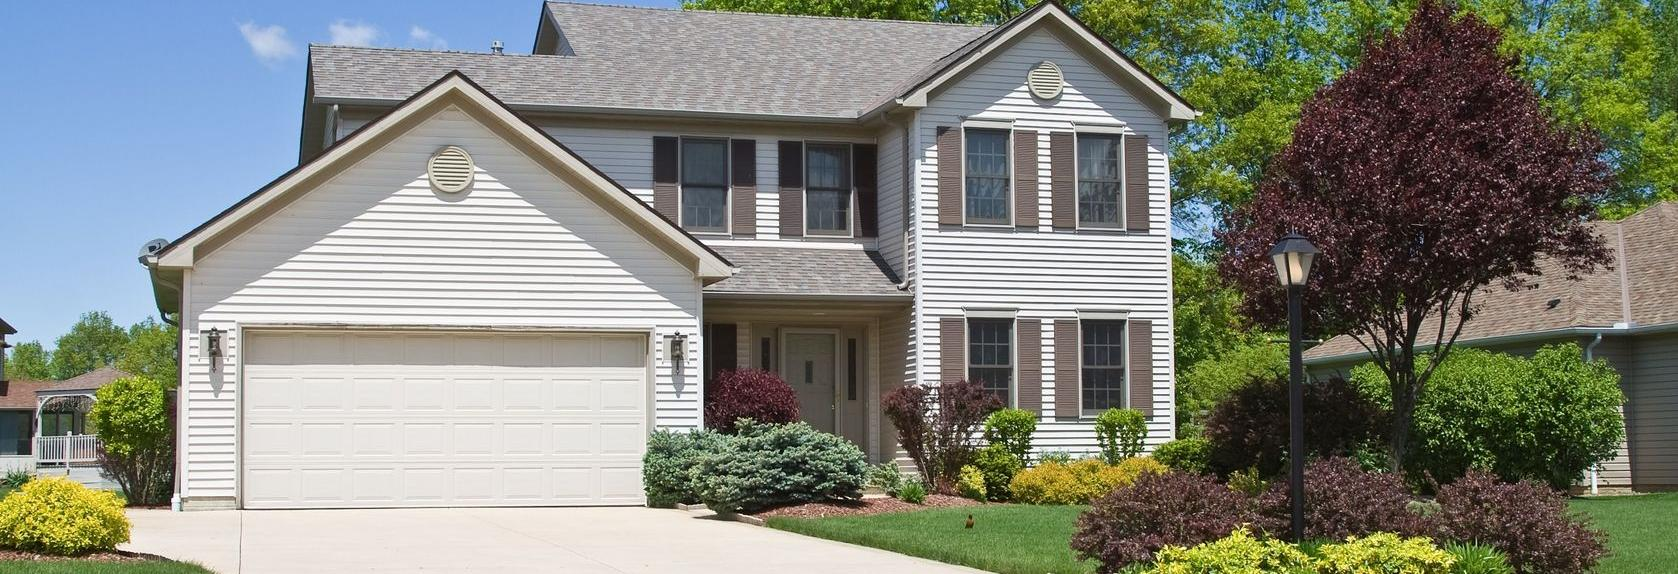 Valley Property Maintenance in Pleasant Valley, NY banner